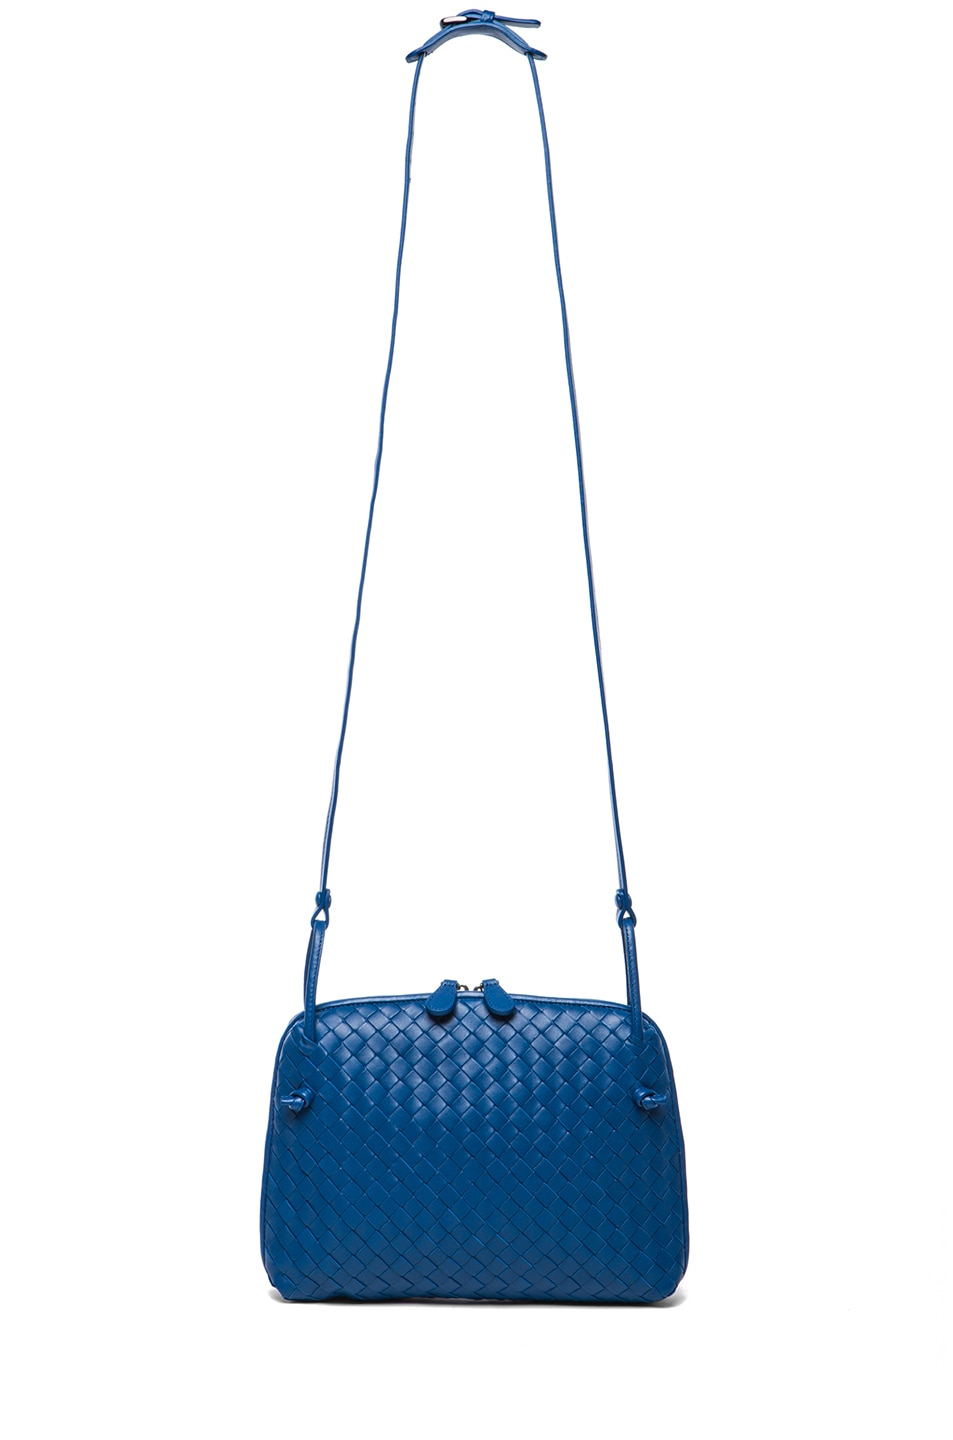 Image 5 of Bottega Veneta Intrecciato Nappa Cross Body Bag in Electrique